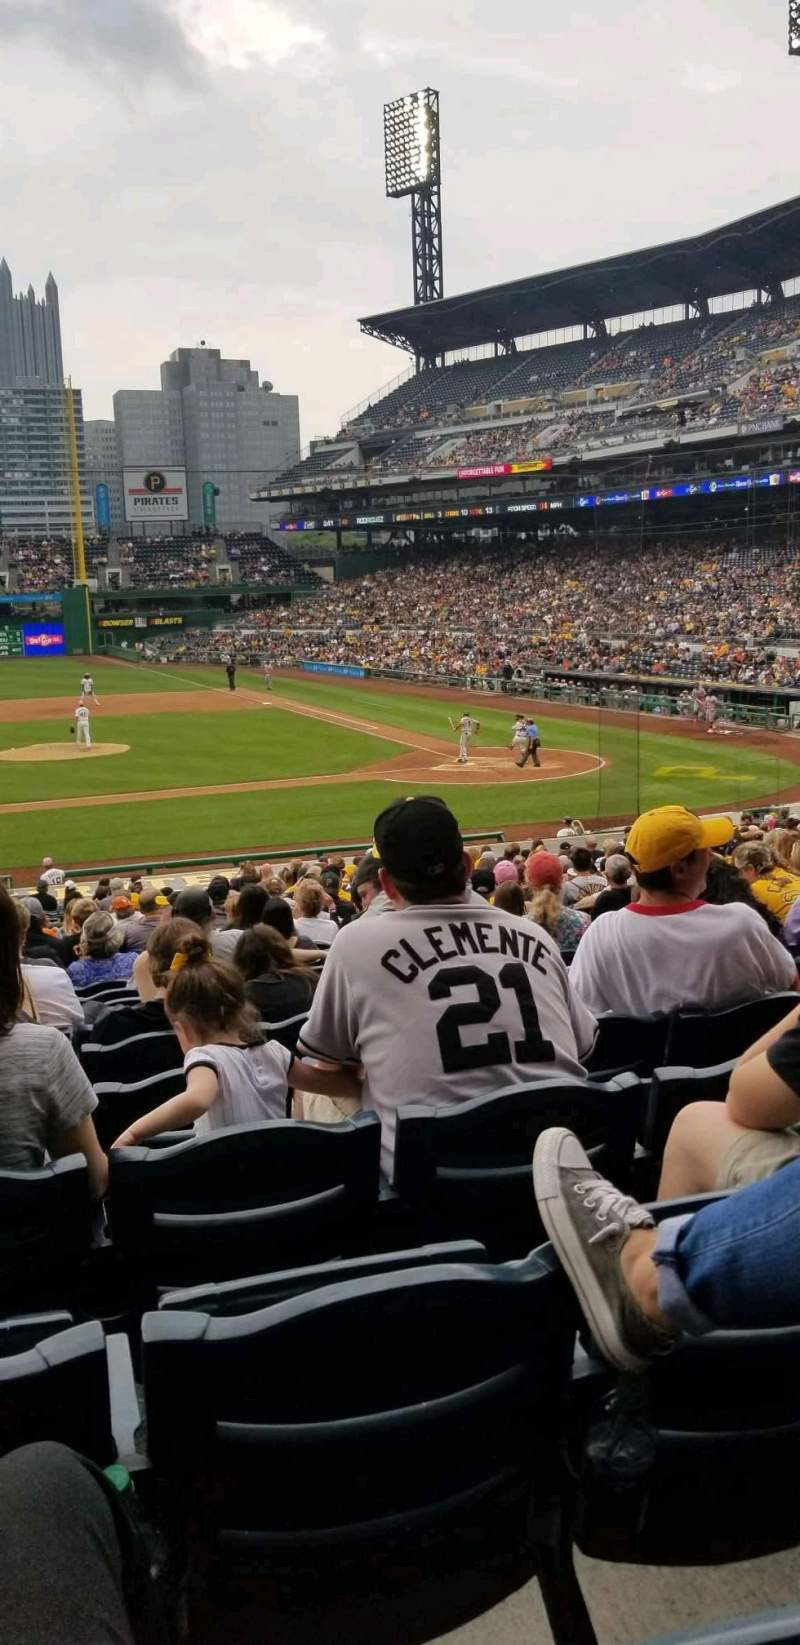 Seating view for PNC Park Section 121 Row u Seat 16